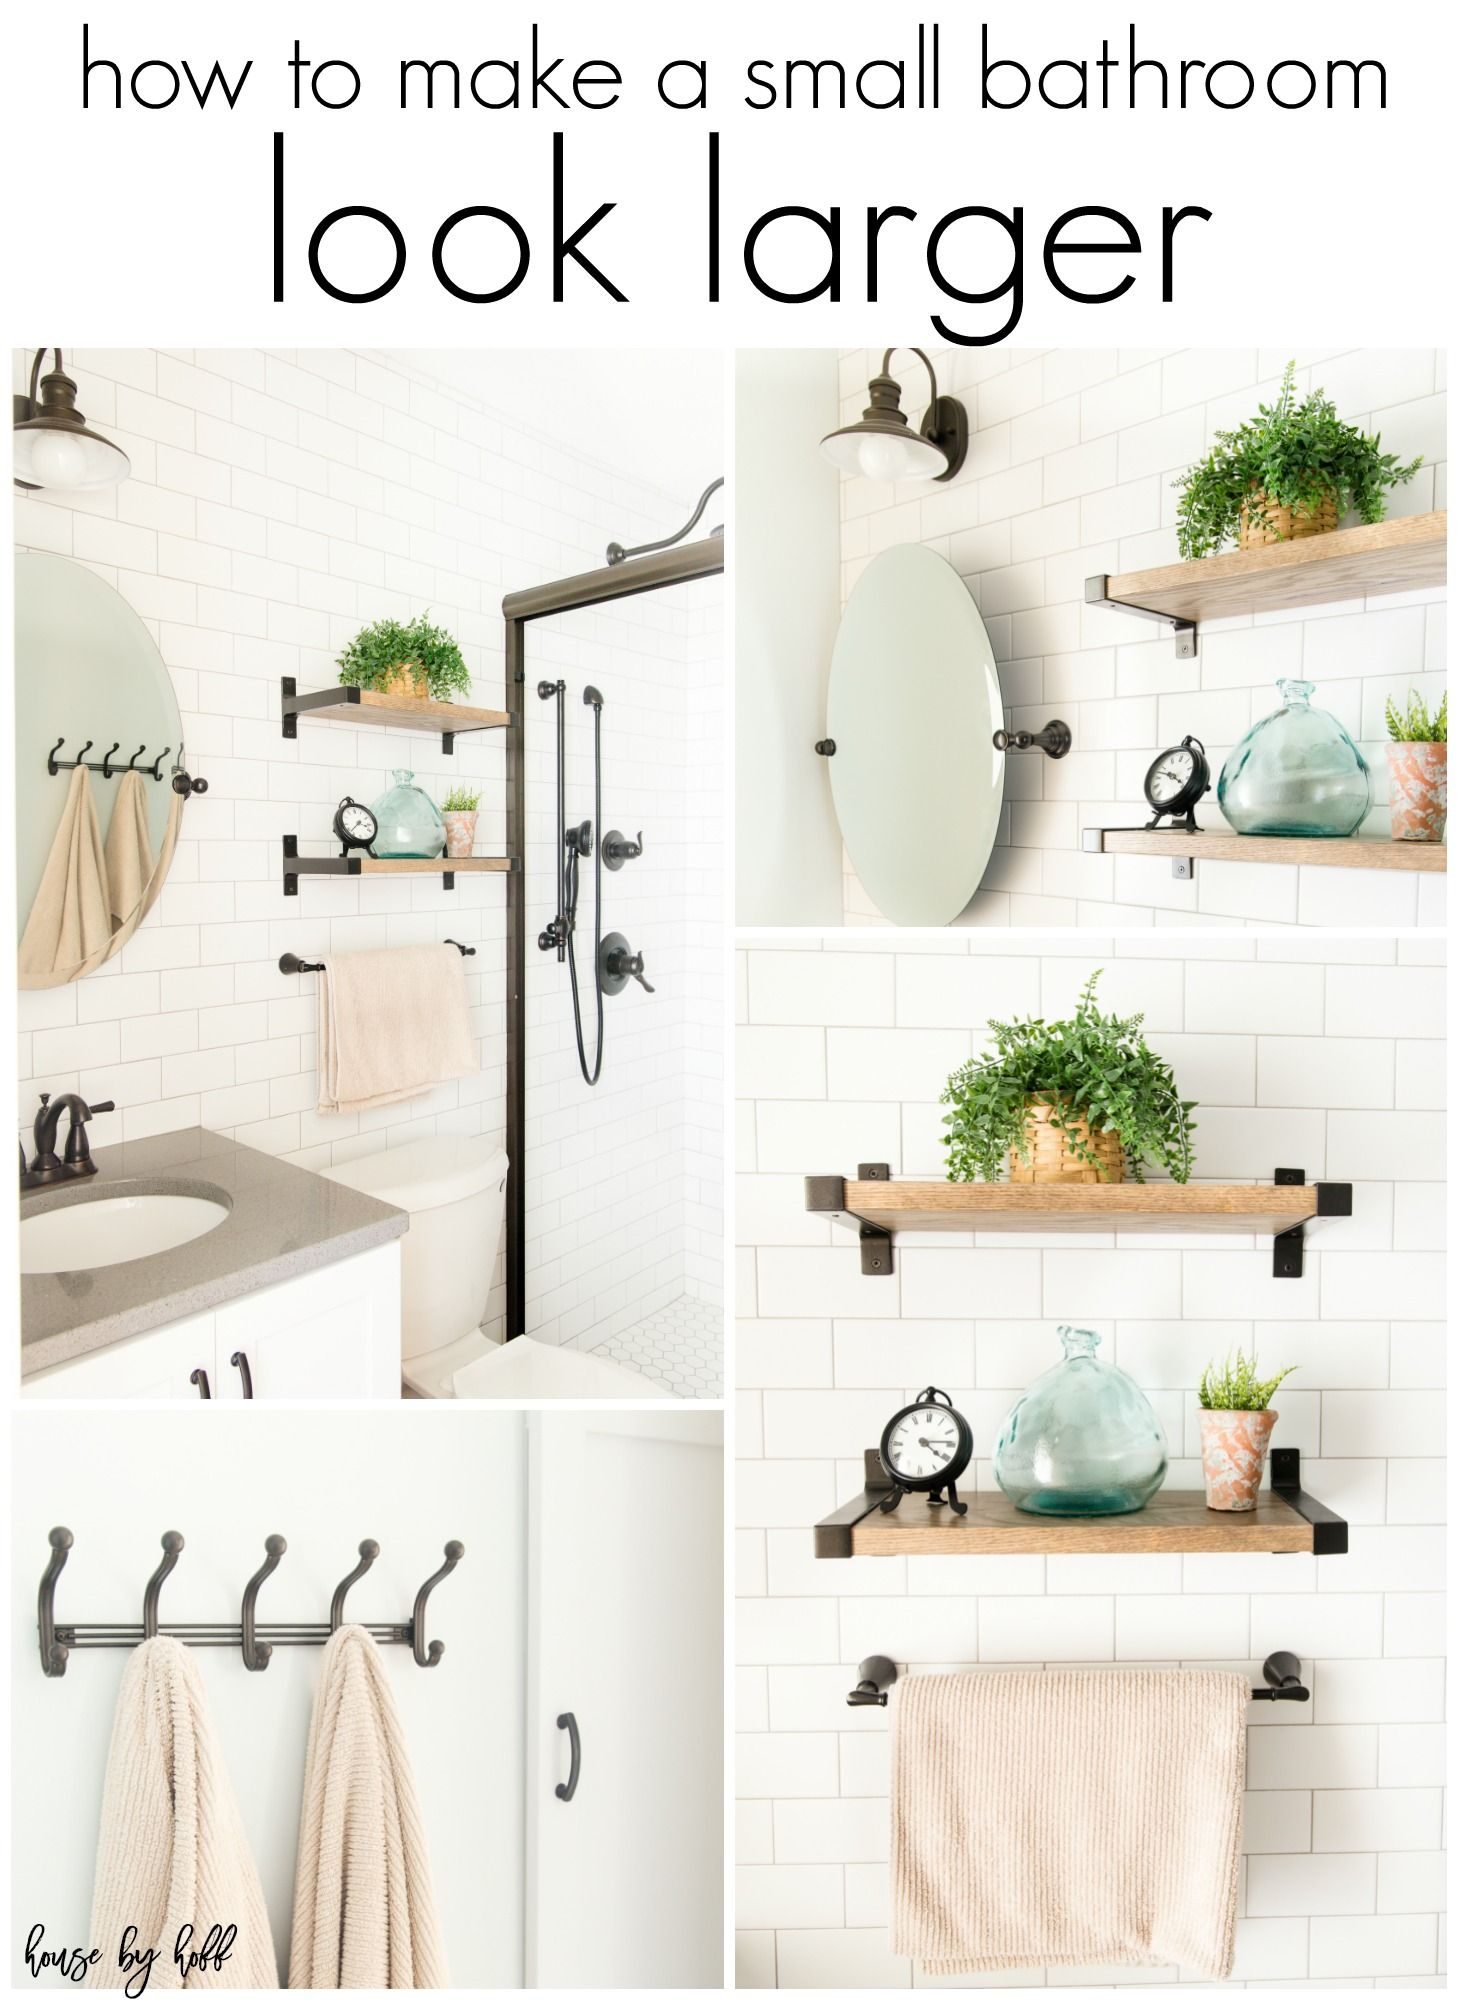 How To Make A Small Bathroom Look Larger: My Parentsu0027 Bathroom Makeover